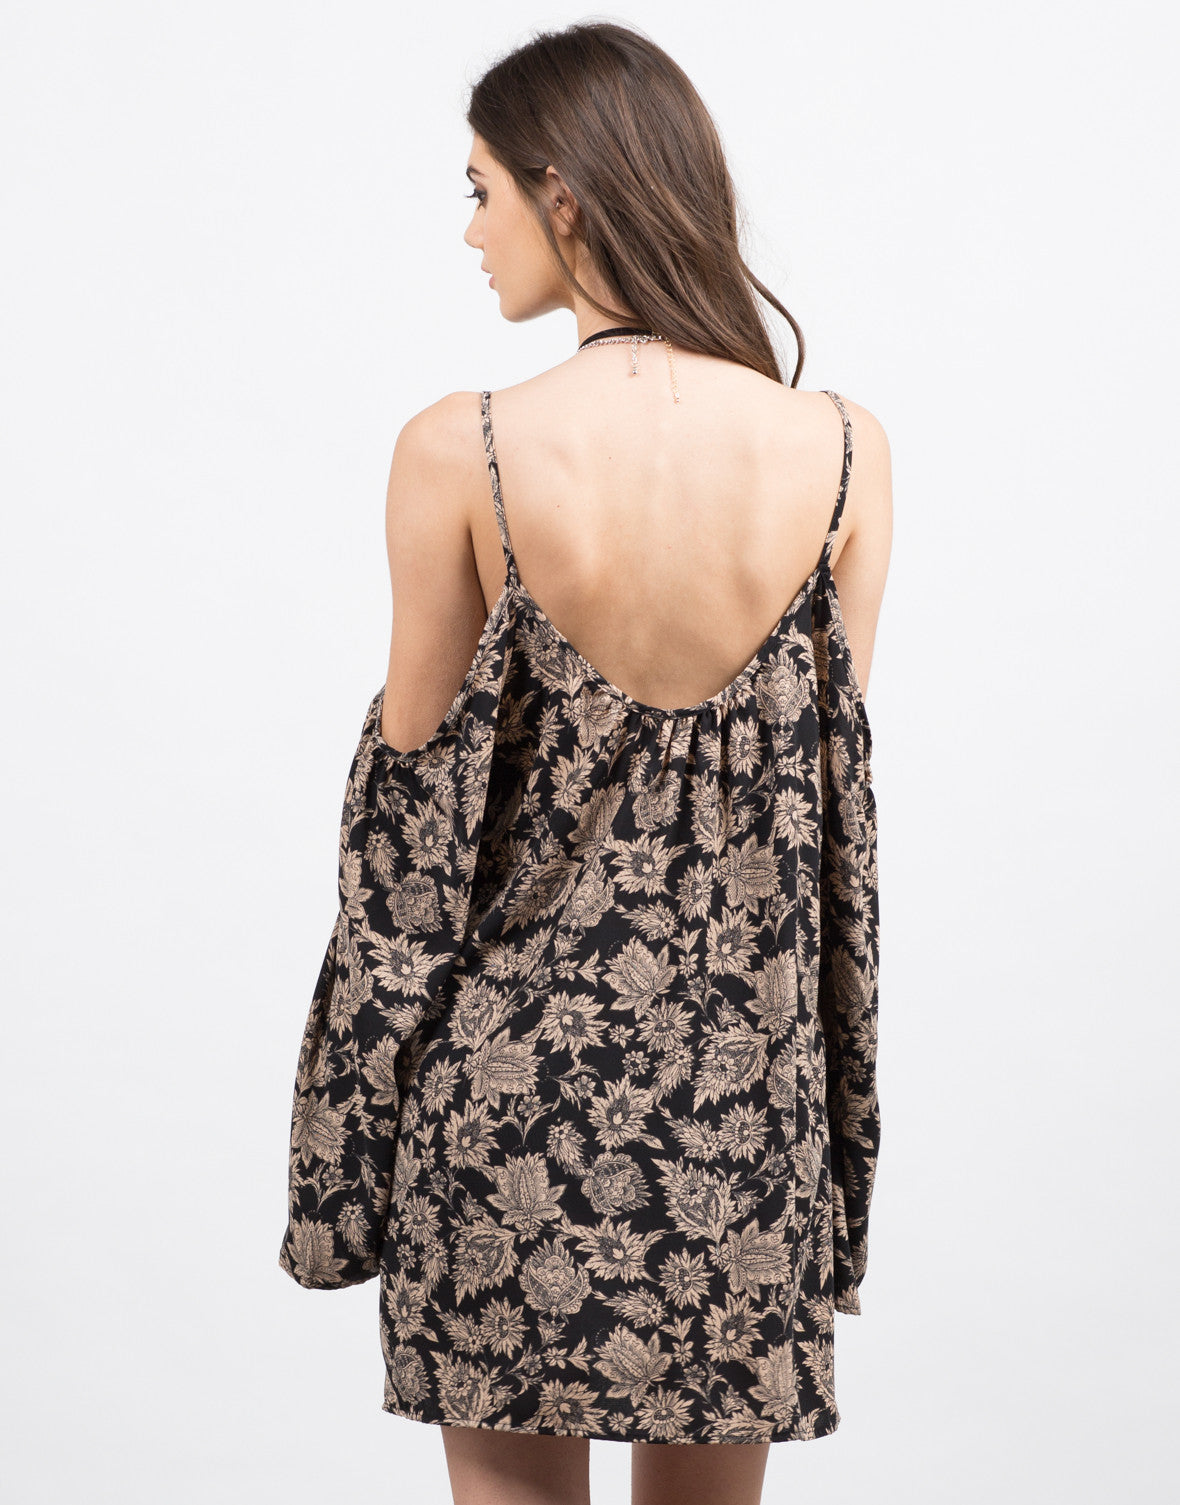 Back View of Printed Floral Dress